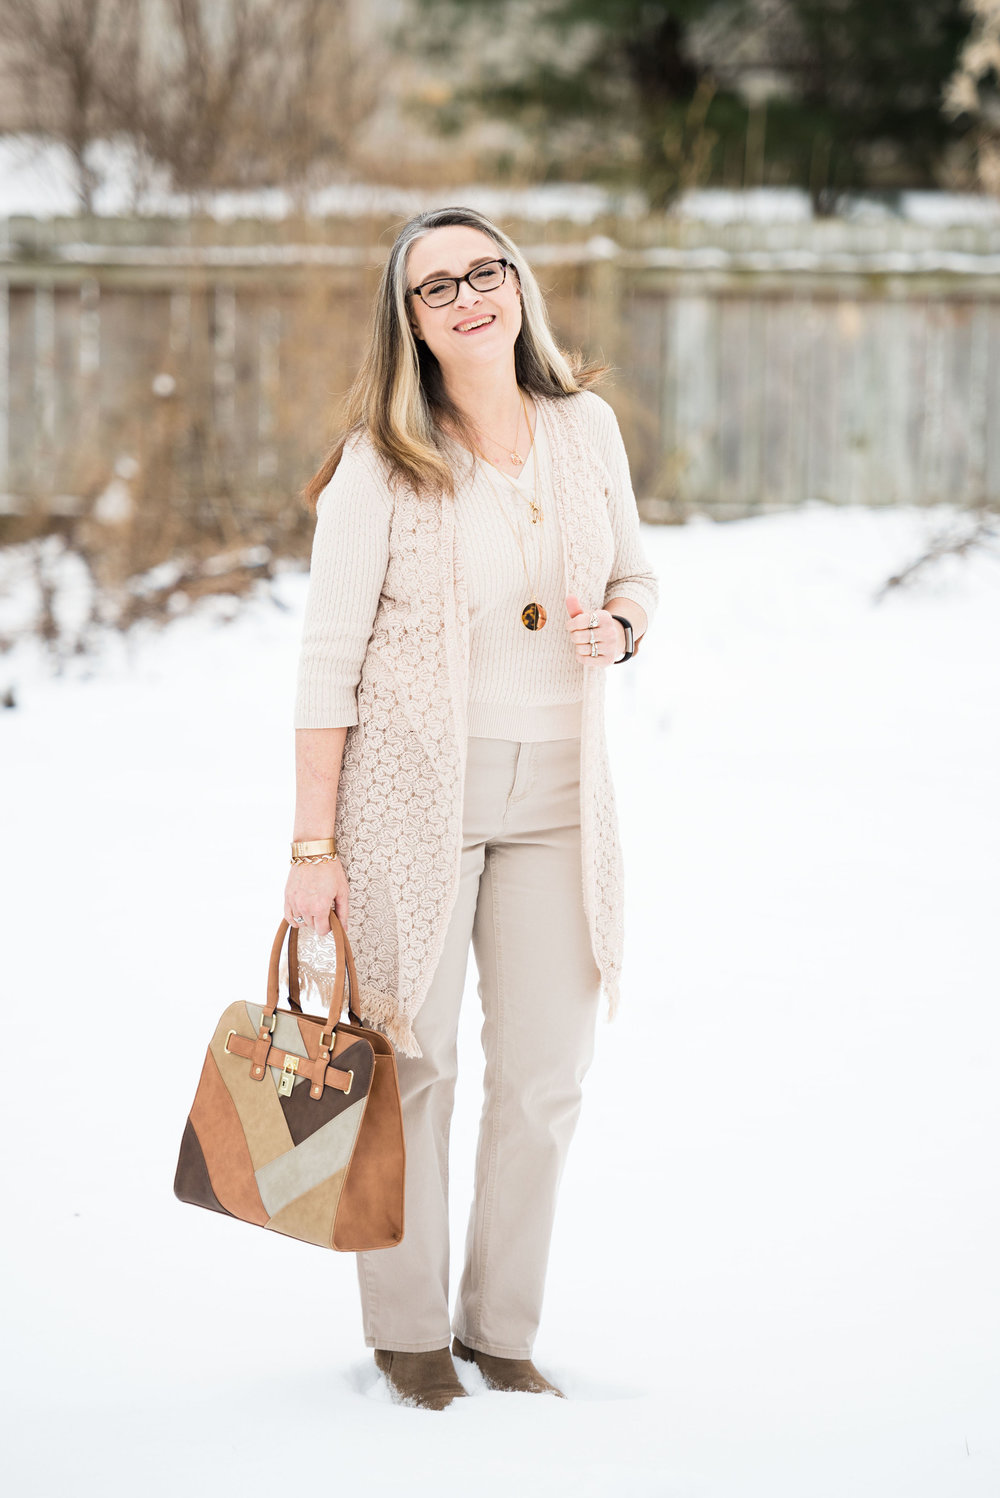 Spring Trends - Head to Toe Neutral